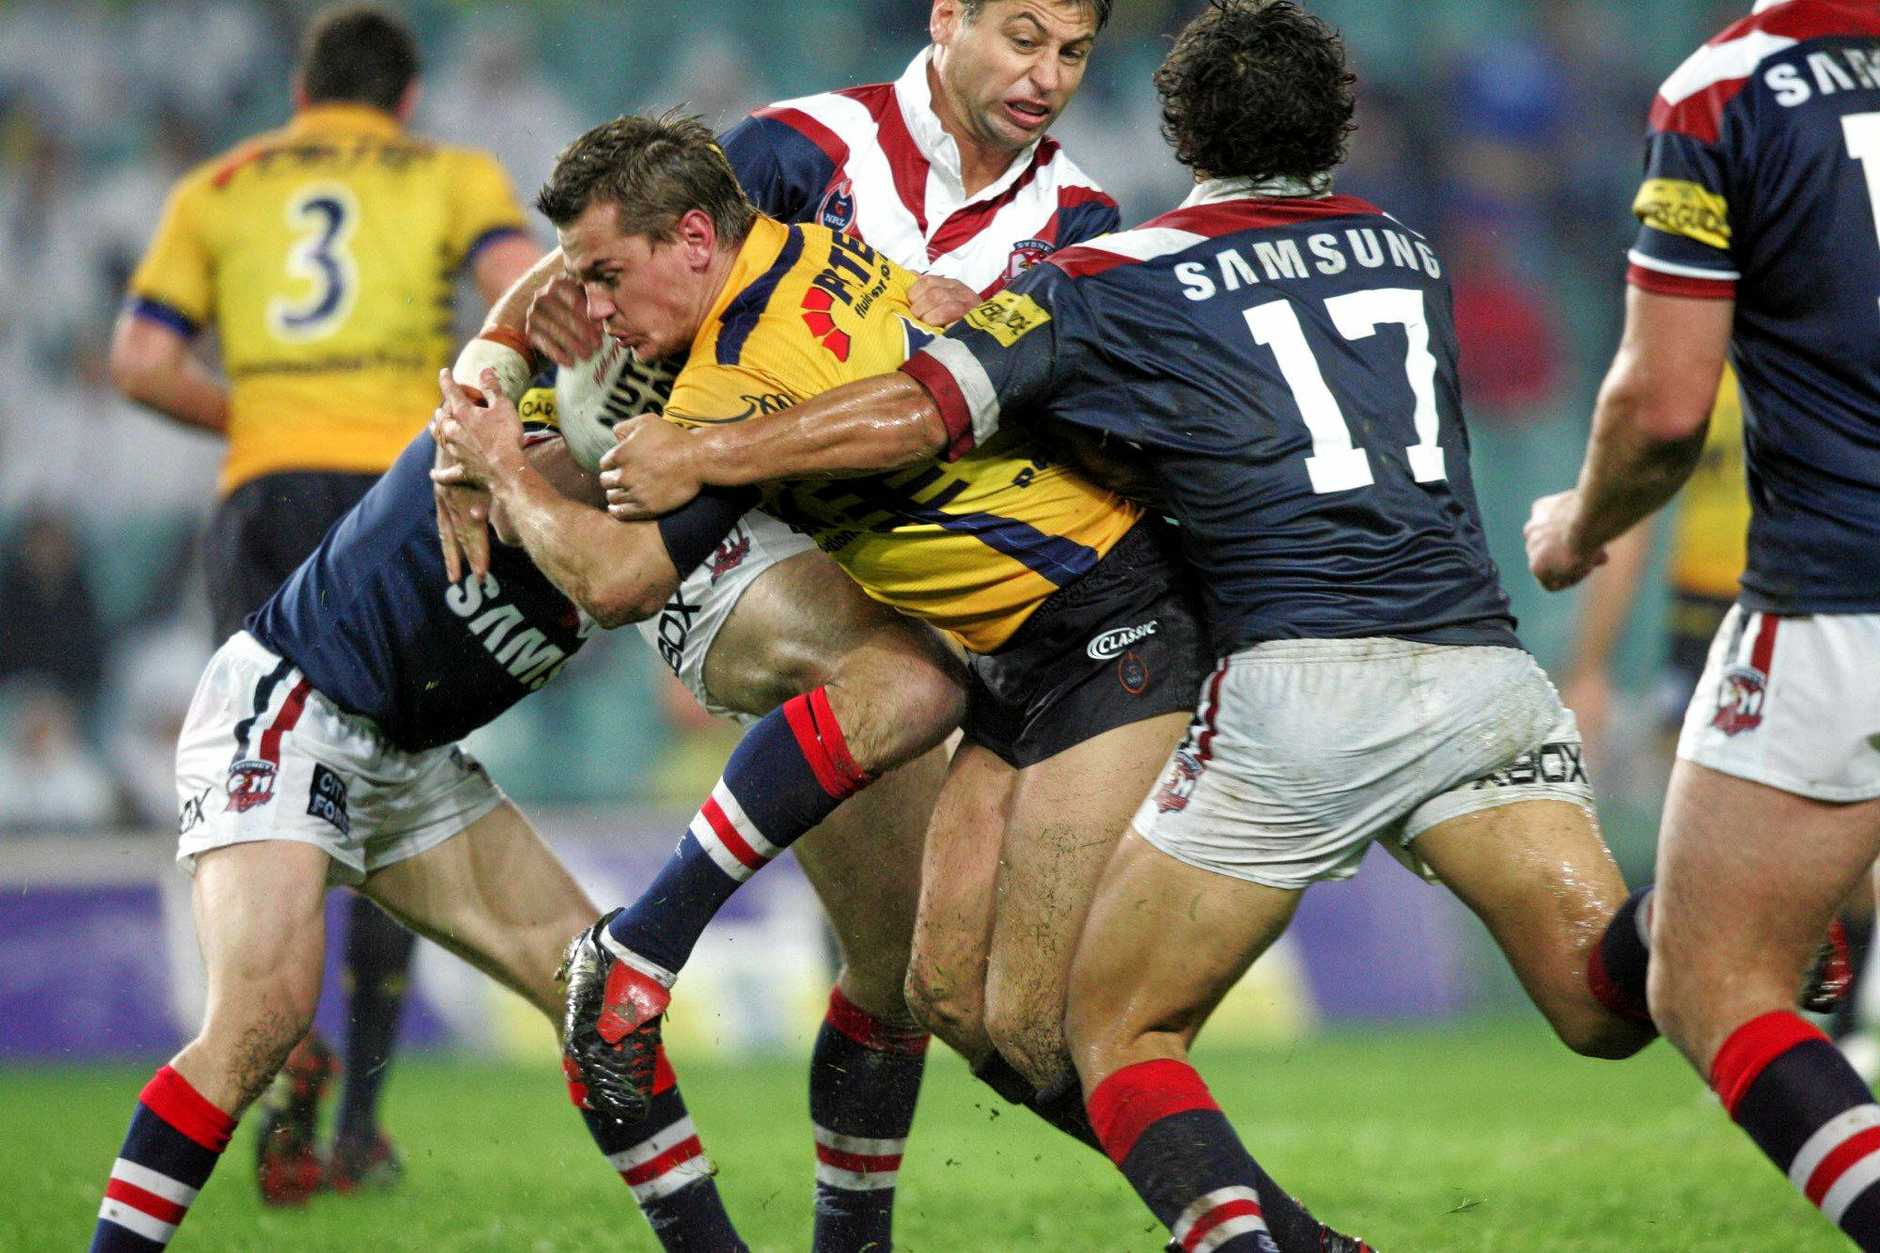 REMEMBERED: The late Chad Robinson in action for Parramatta against the Sydney Roosters.